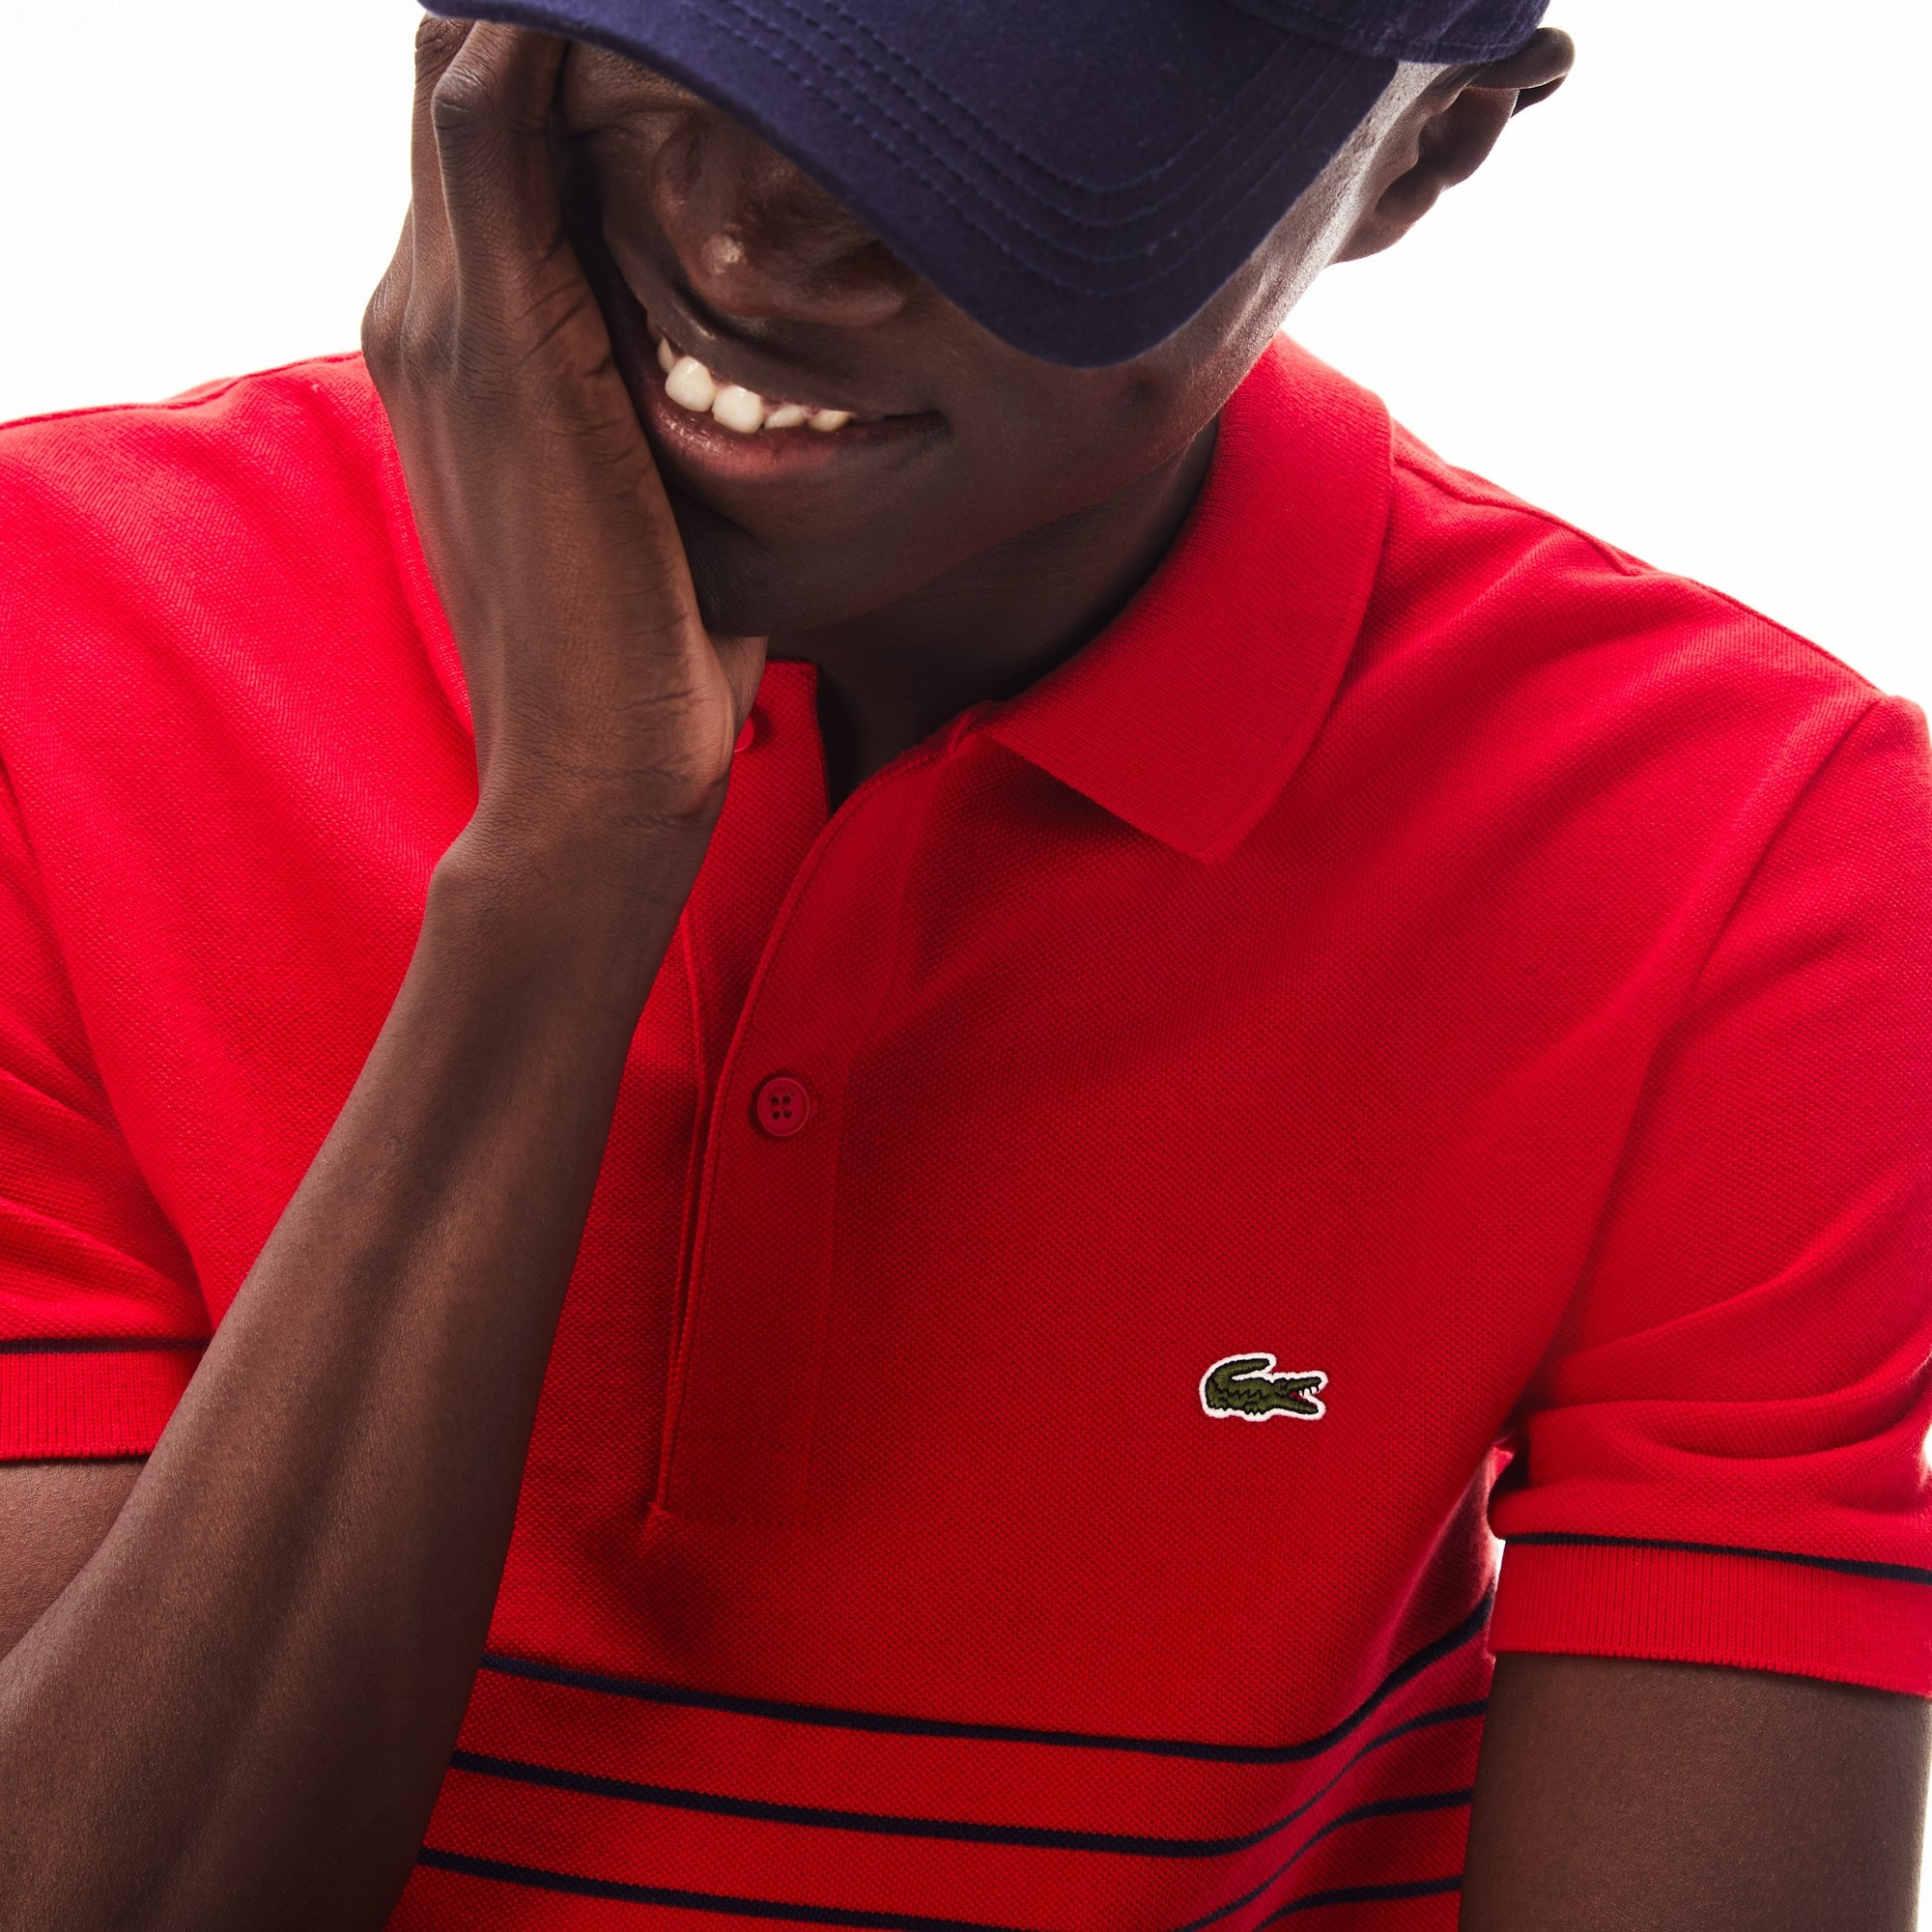 Men's Lacoste Striped Cotton Petit Piqué Polo Shirt